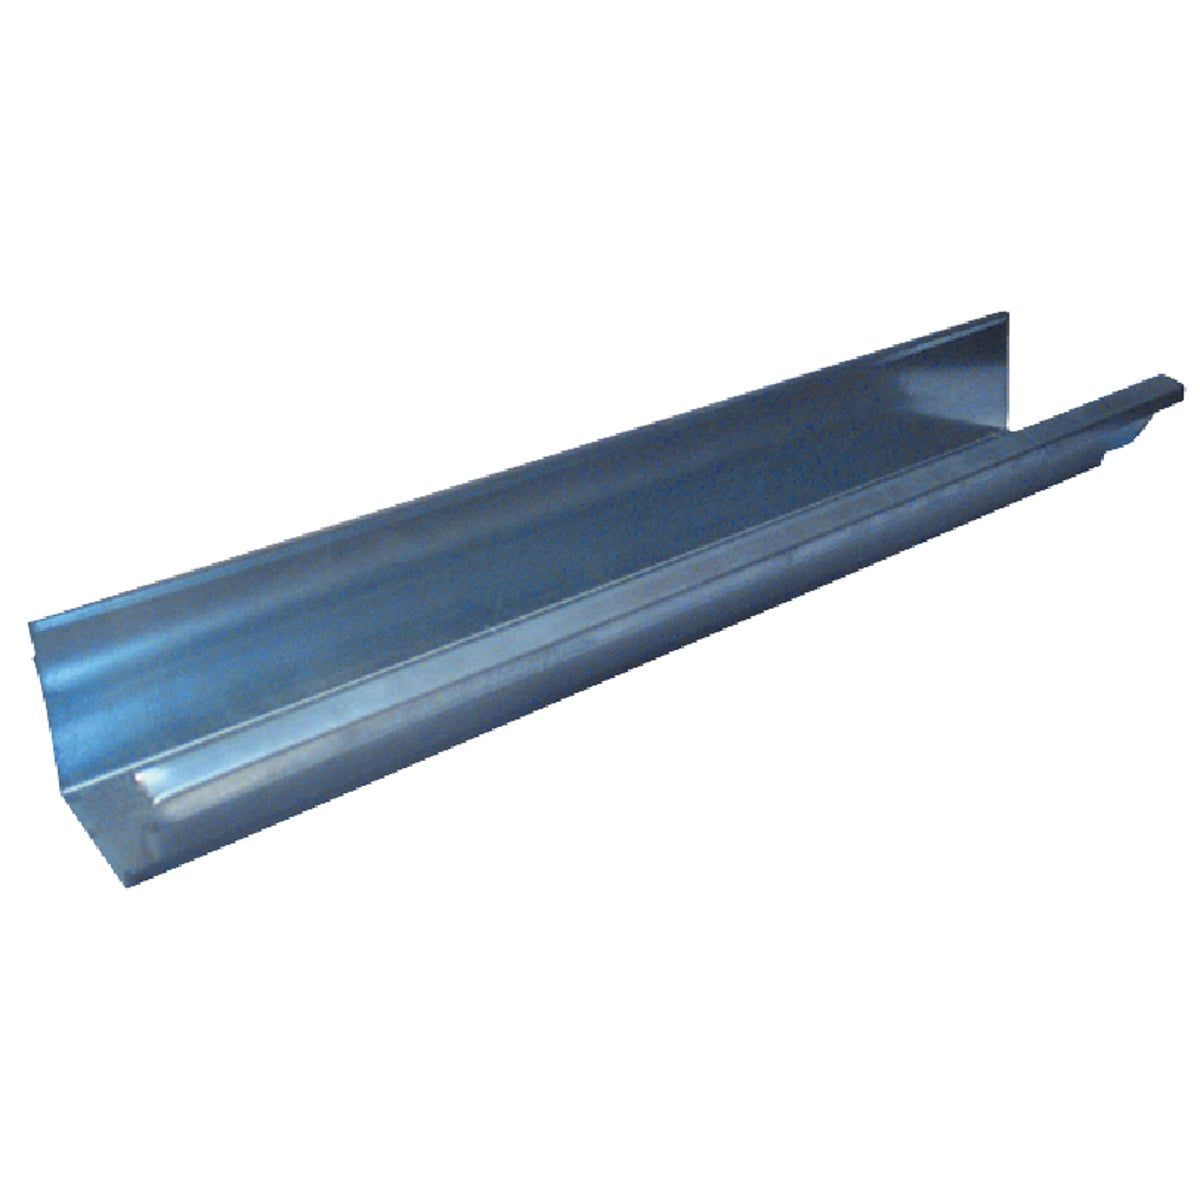 "4""X10' GALV GUTTER - 216701 by Noll/norwesco Llc"